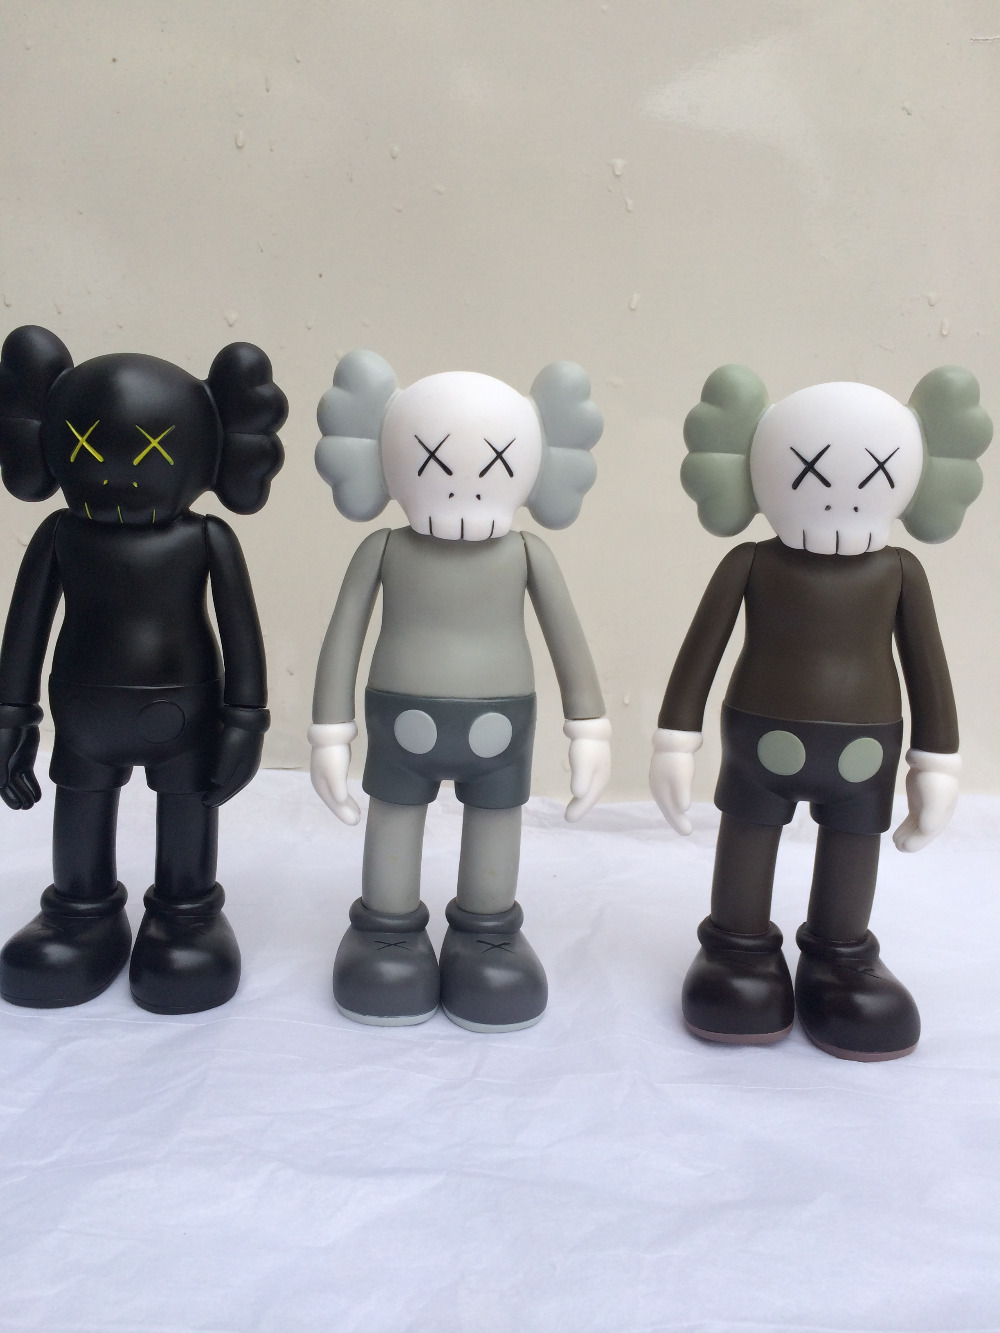 Kaws planet doll 8 inches dolls hand-done decoration christmas gift original fake bf0011